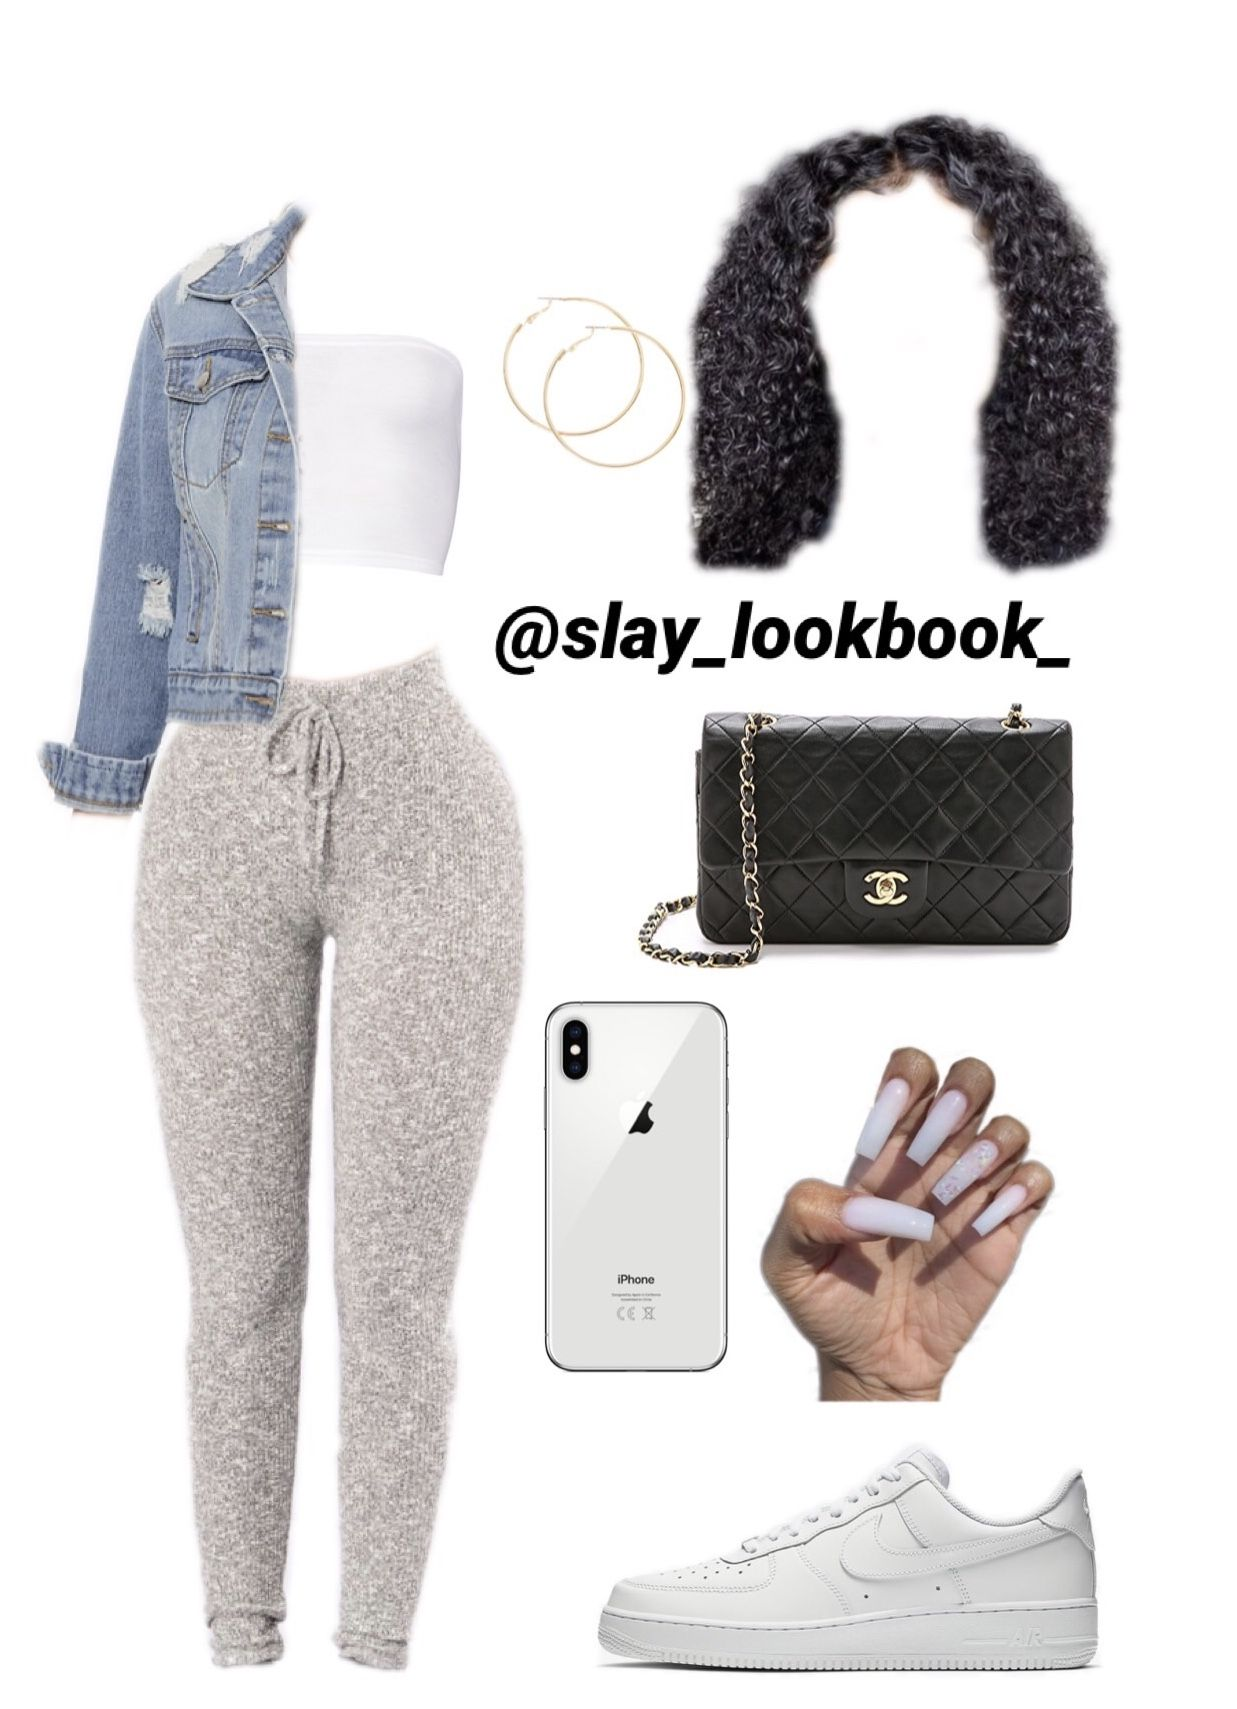 Follow me and my ig @slay lookbook  for more cute fits !!❤️❤️ is part of Outfits -